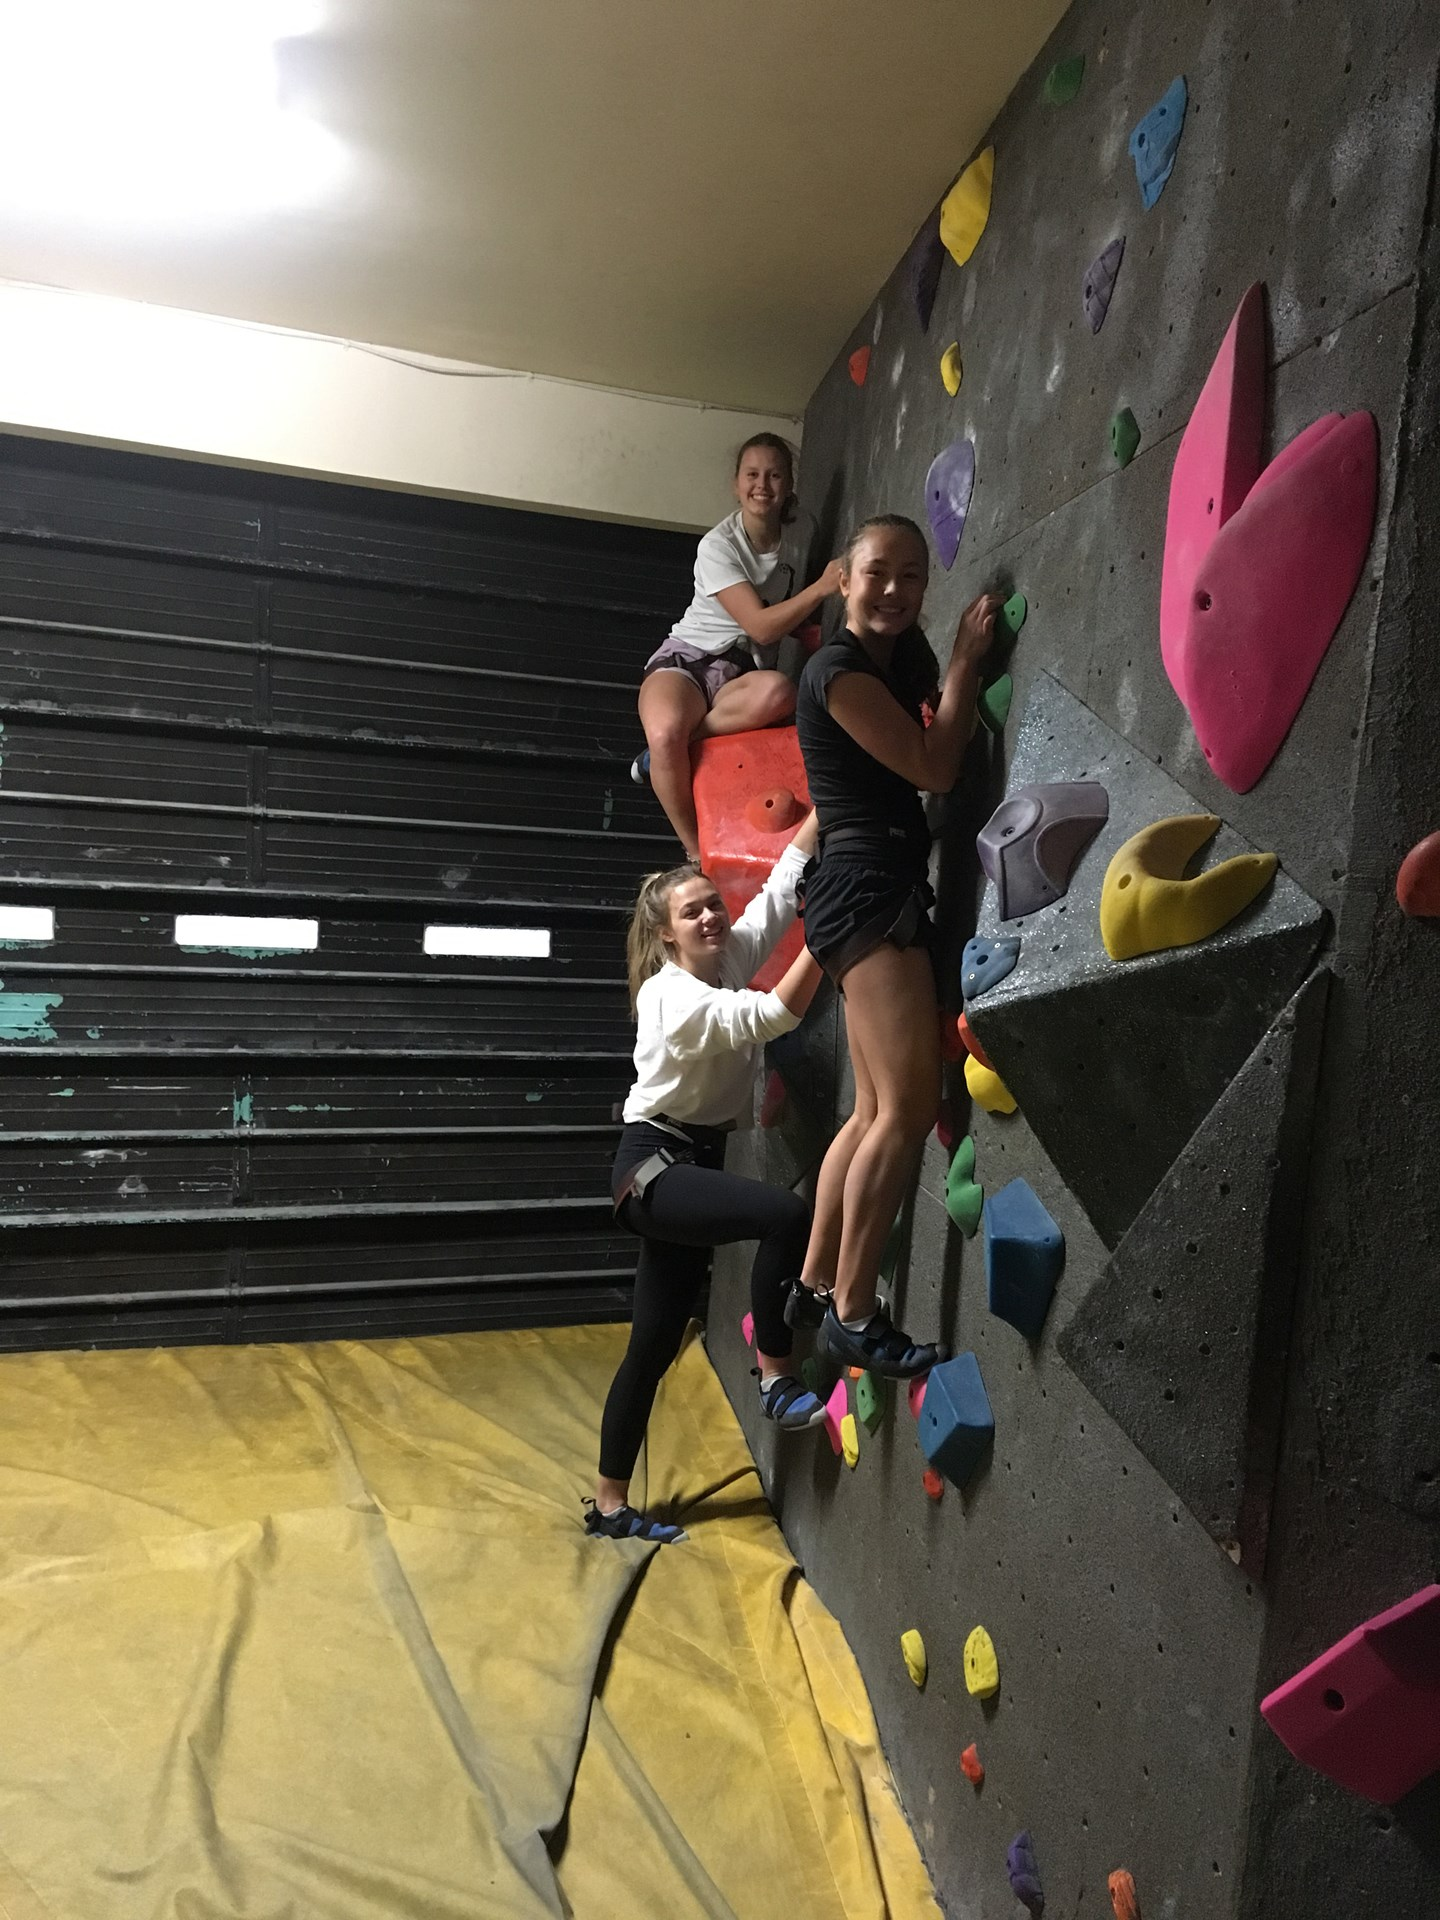 Outood Ed 2018 Indoor Rock Climbing 2.jpg